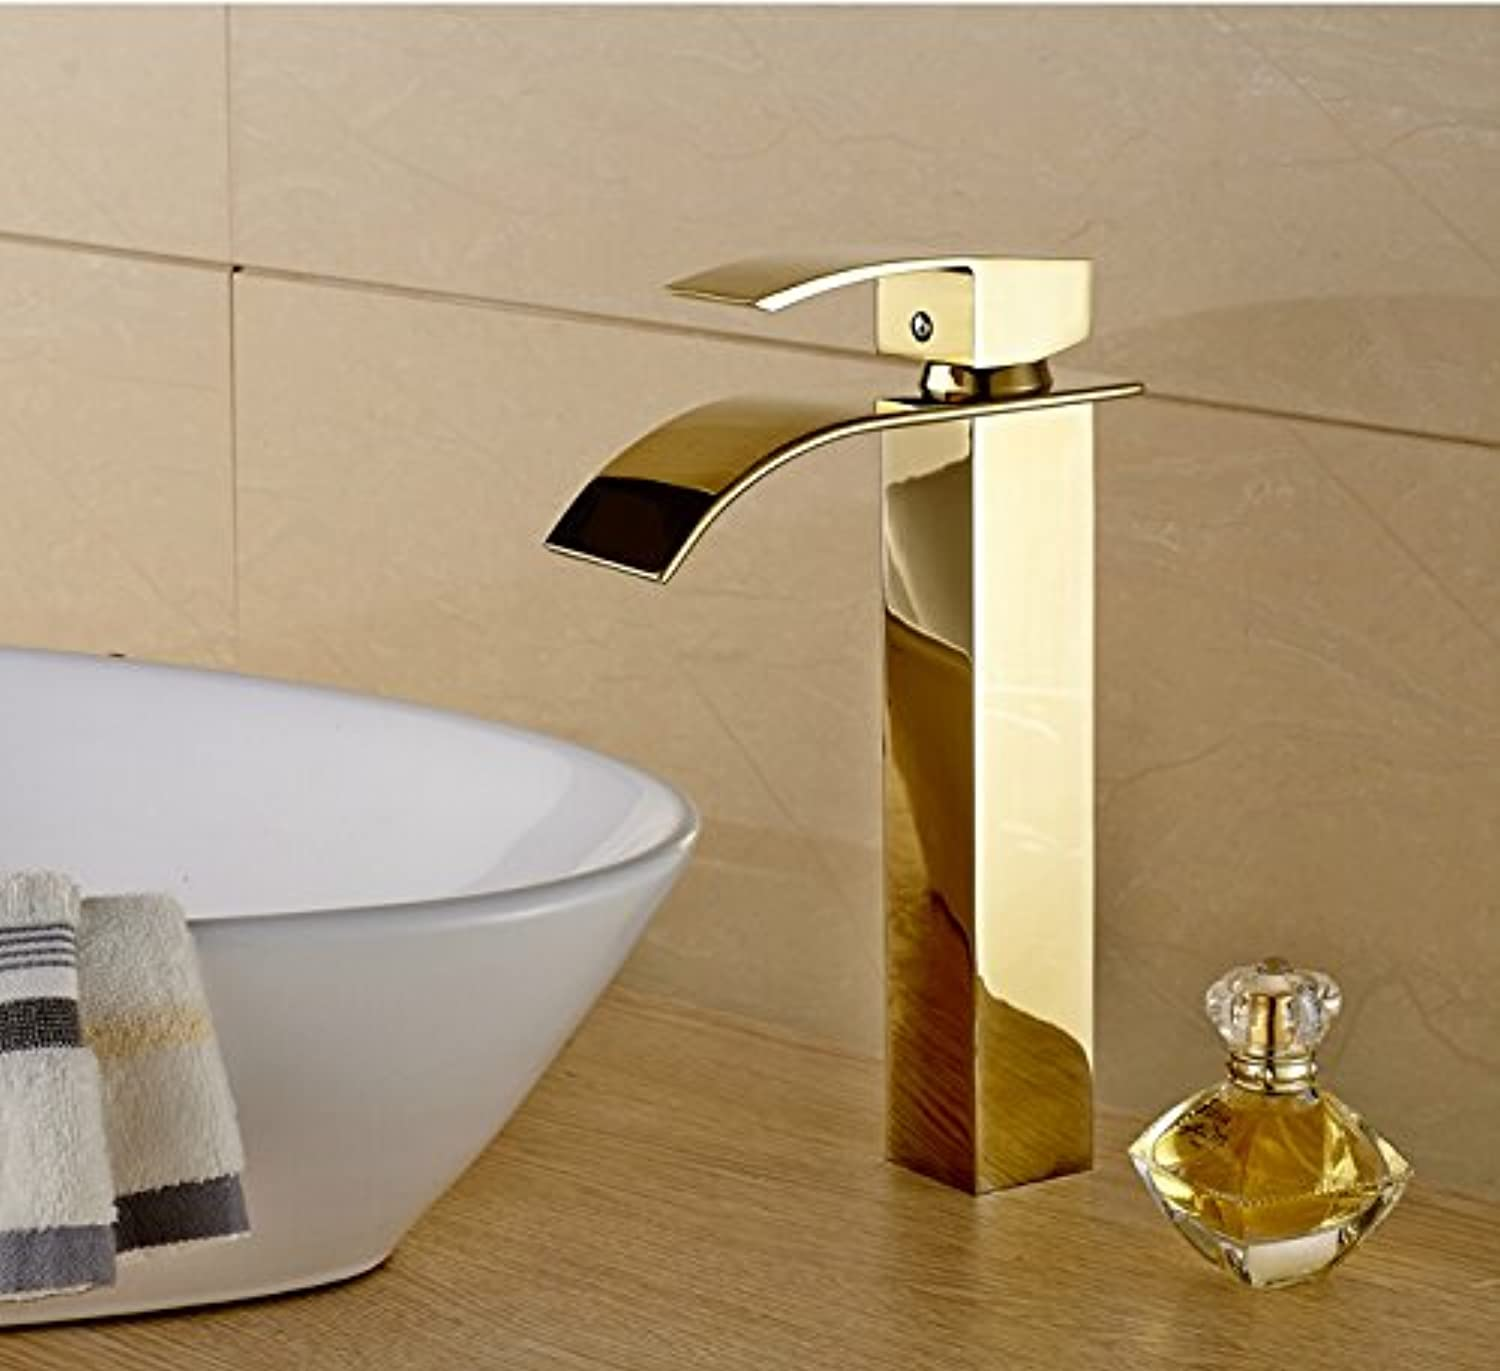 Makej Tall Basin Faucet golden color Solid Brass Waterfall Bathroom Mixer Faucet Deck Mounted Single Handle Tap